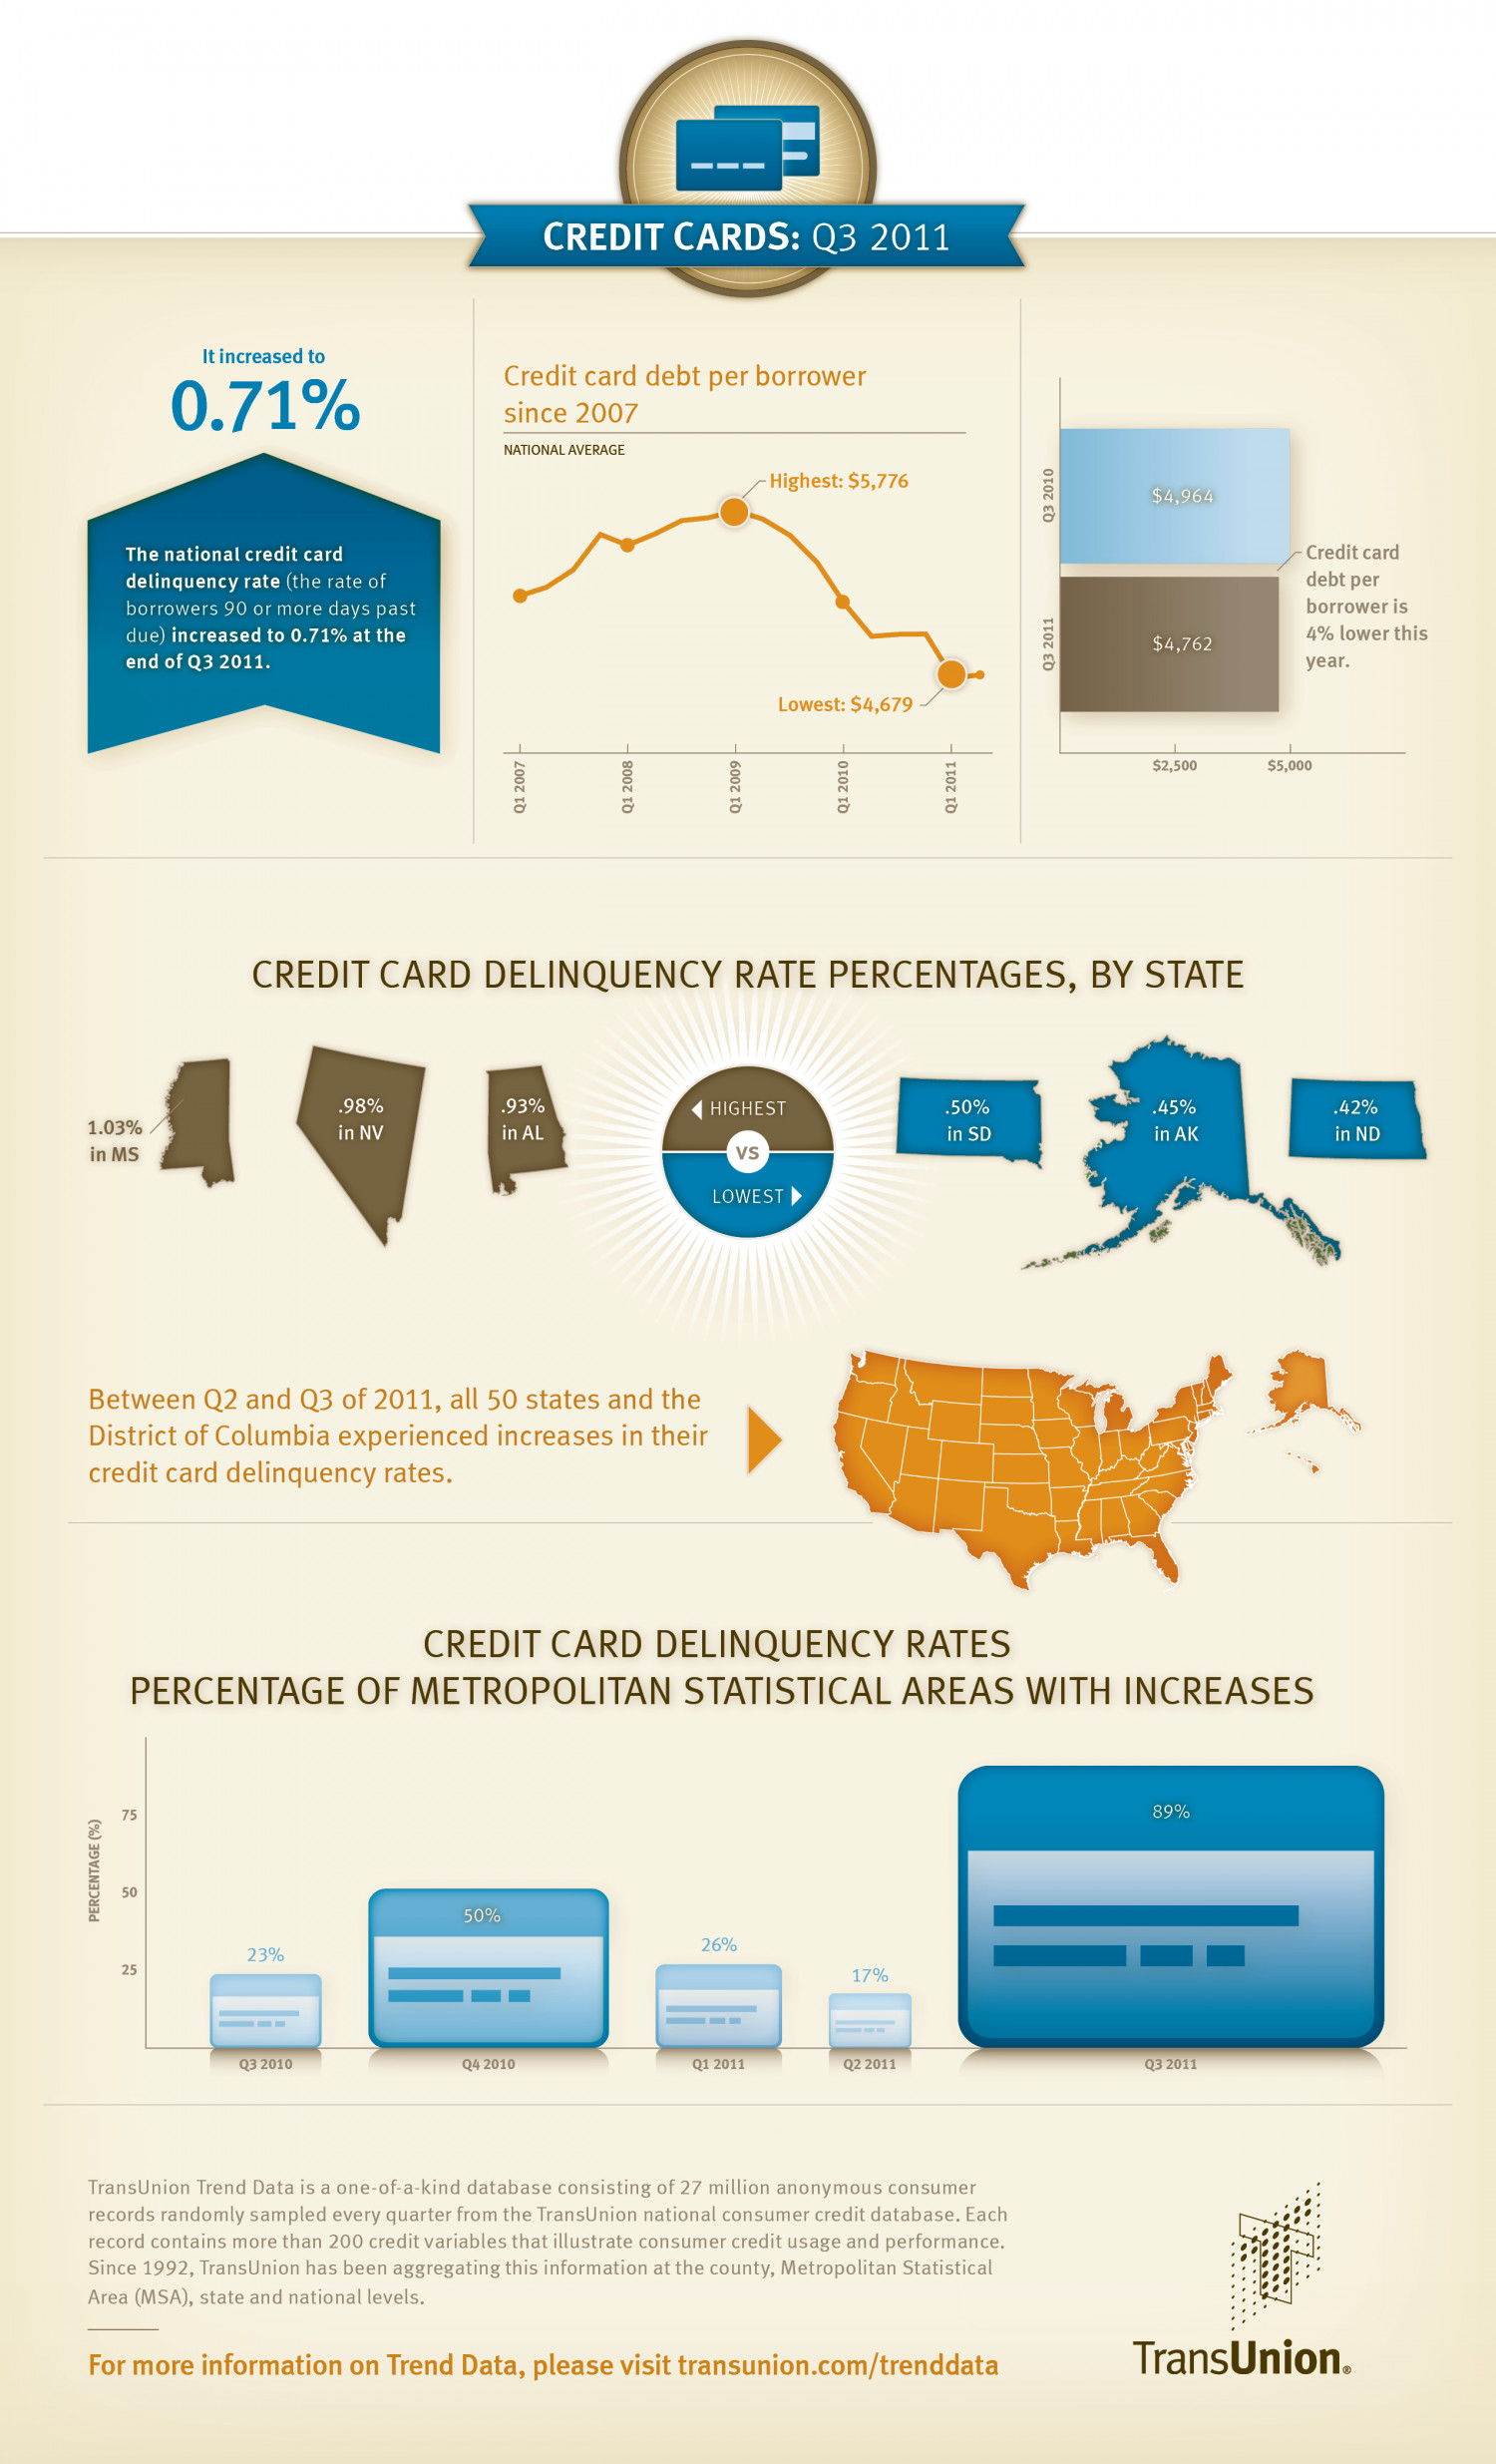 Credit Cards: Q3 2011 Infographic